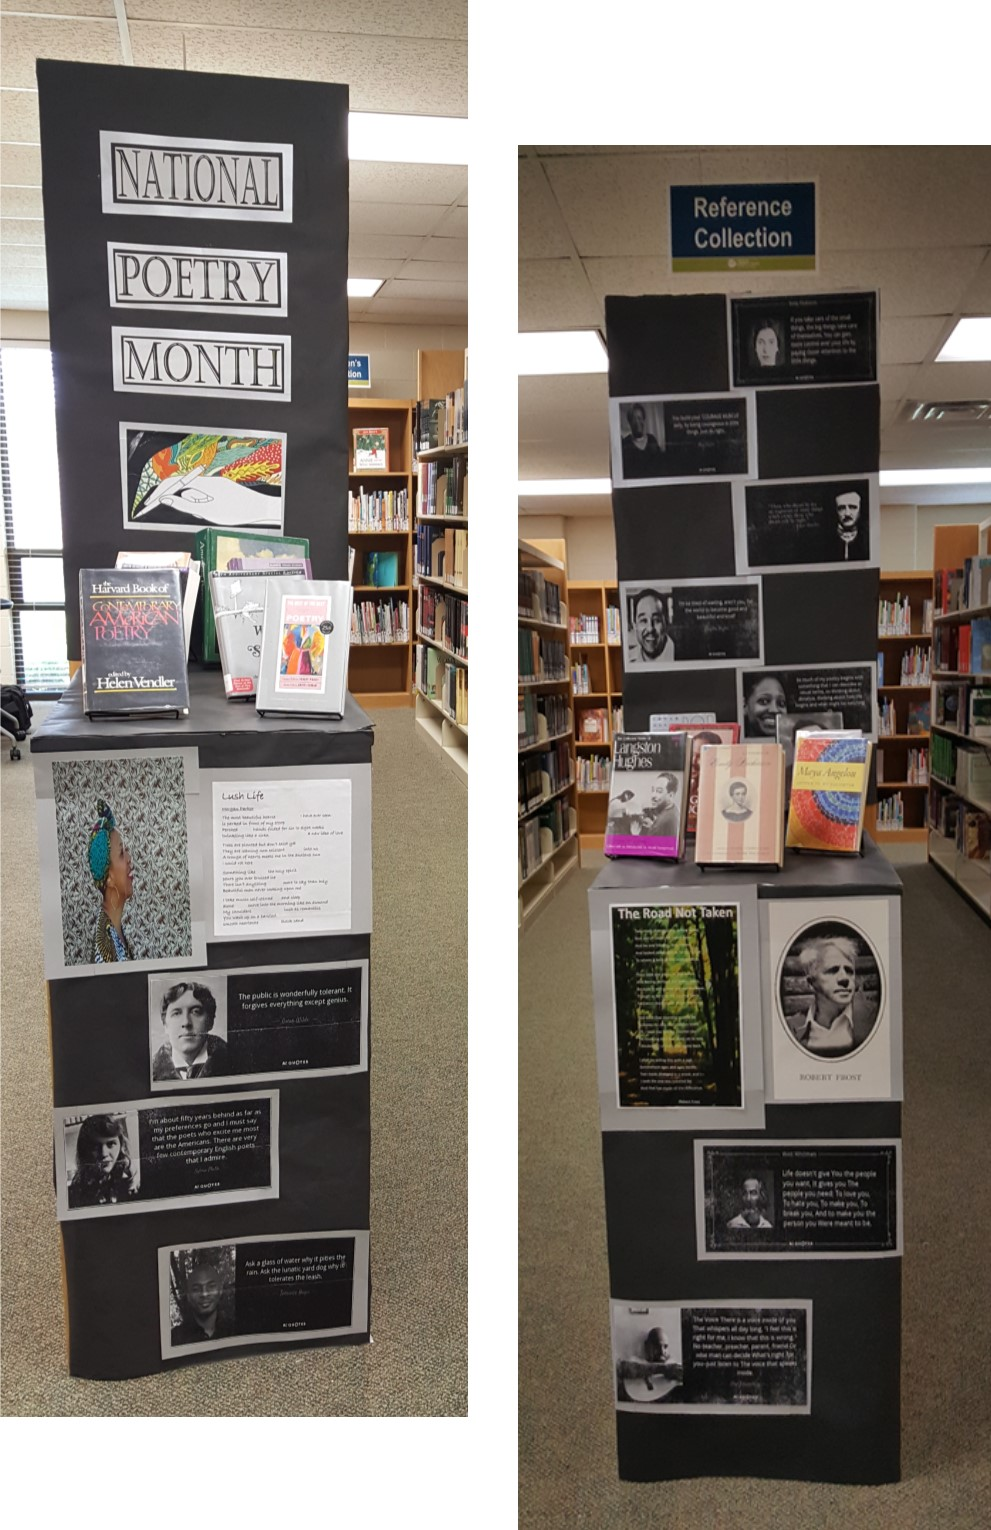 National Poetry Month Display, April 2017